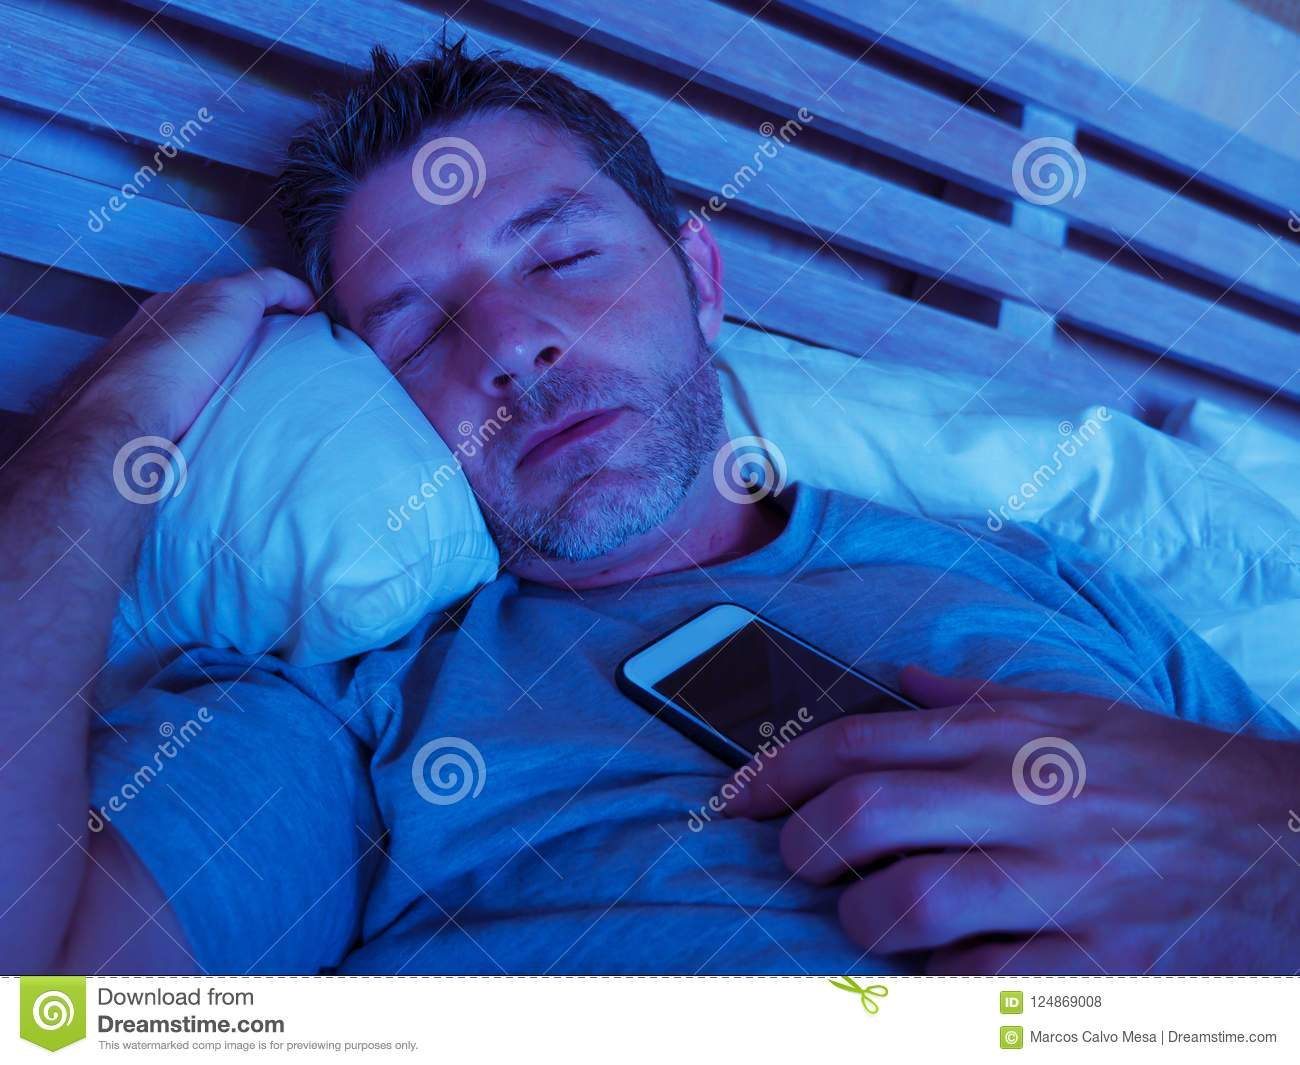 Young internet addict man sleeping on bed holding mobile phone in his hand at night in smartphone and social media network overuse